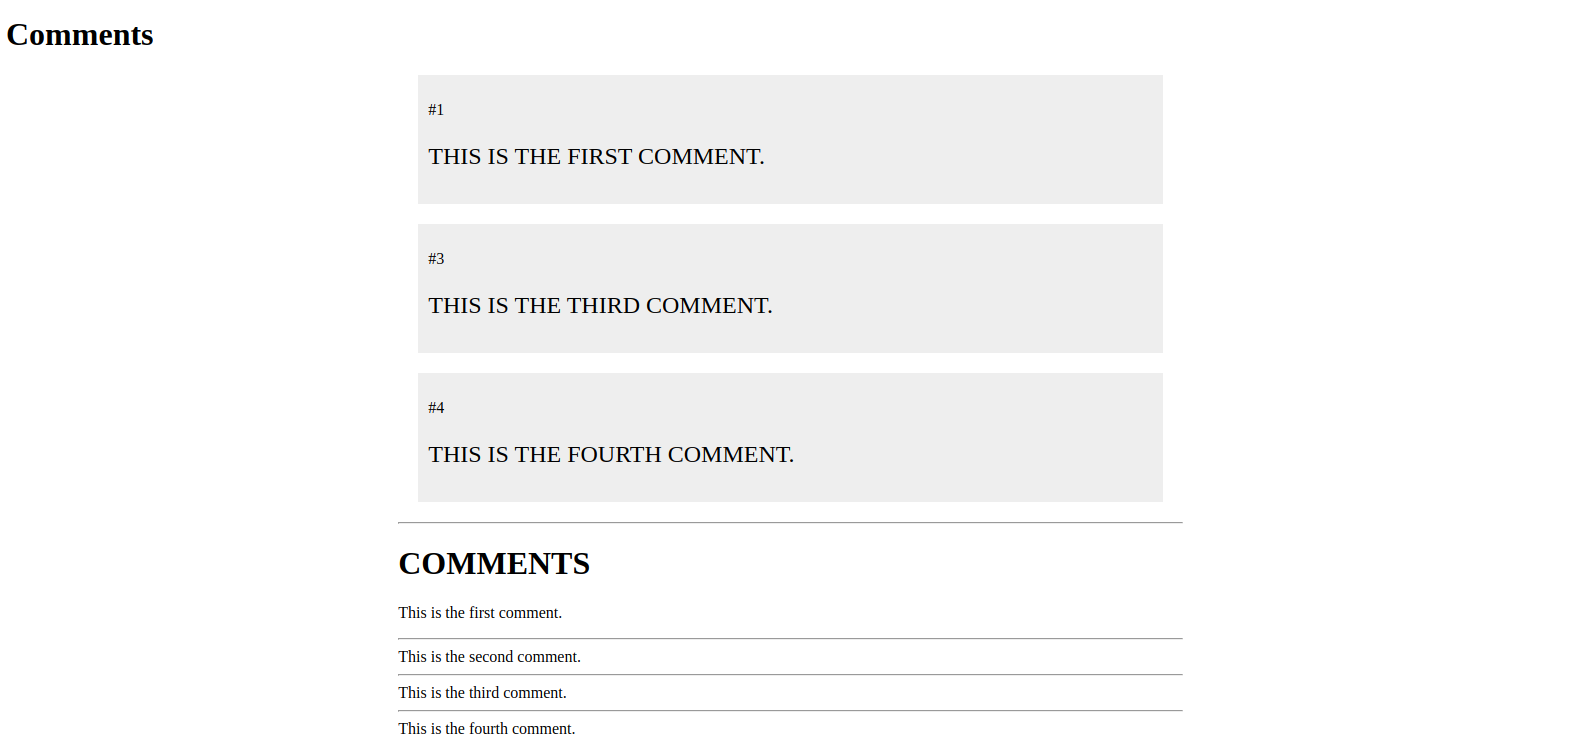 Comments Page With Safe Filter